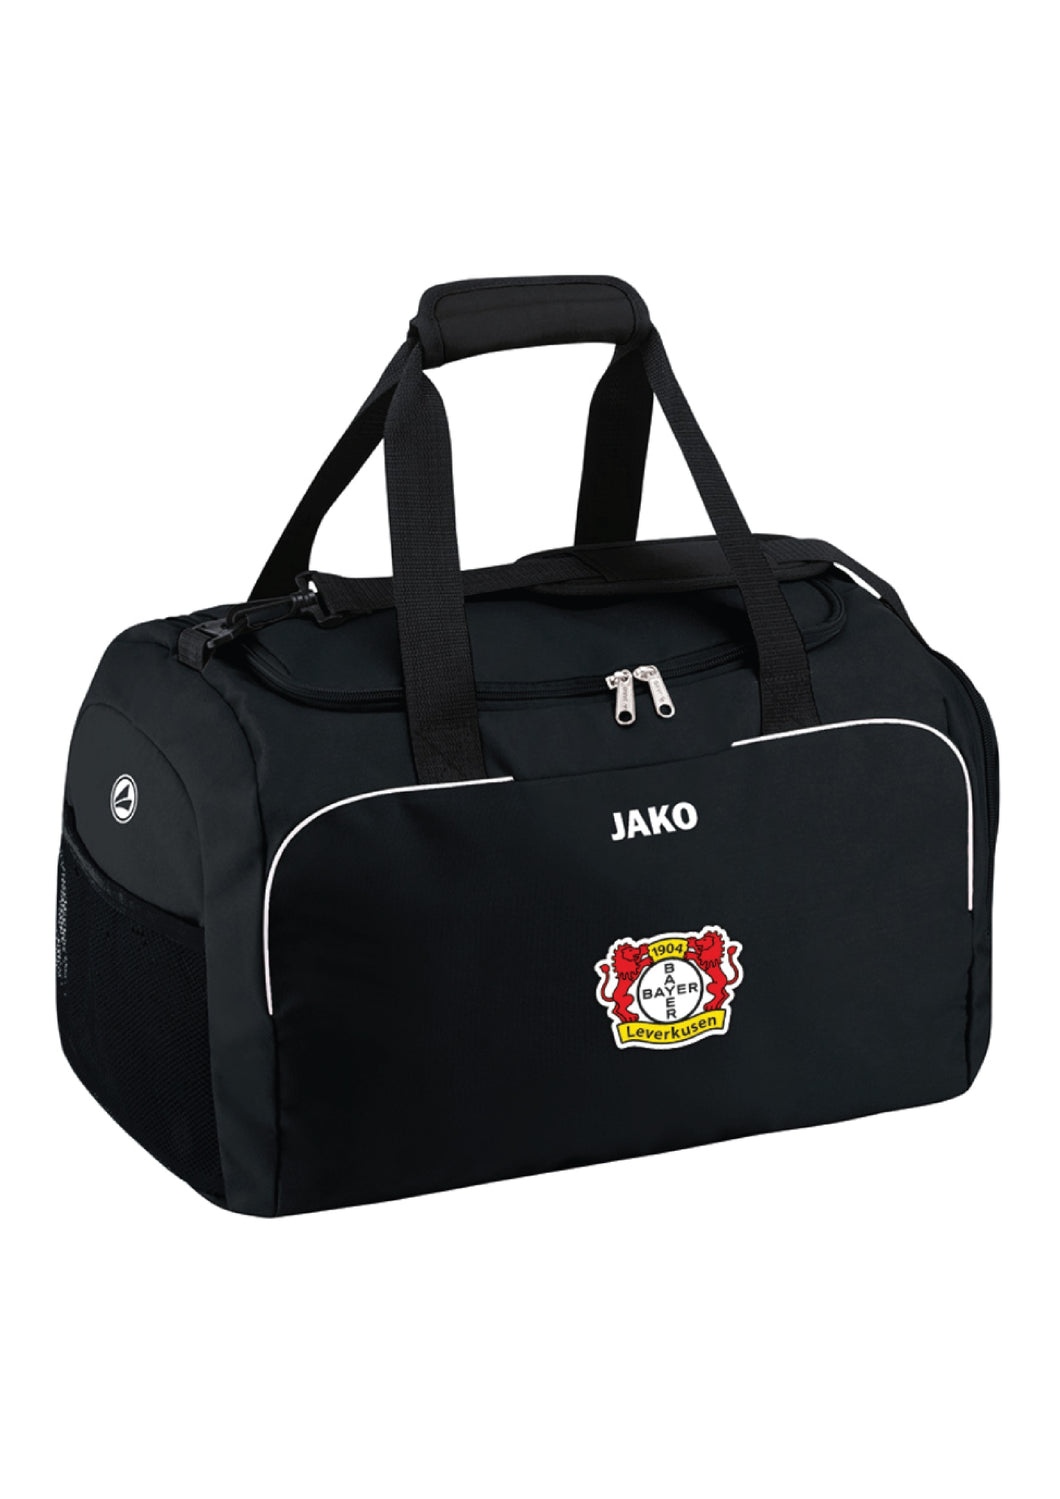 JAKO BAYER 04 LEVERKUSEN SPORTS BAG CLASSICO BA1950